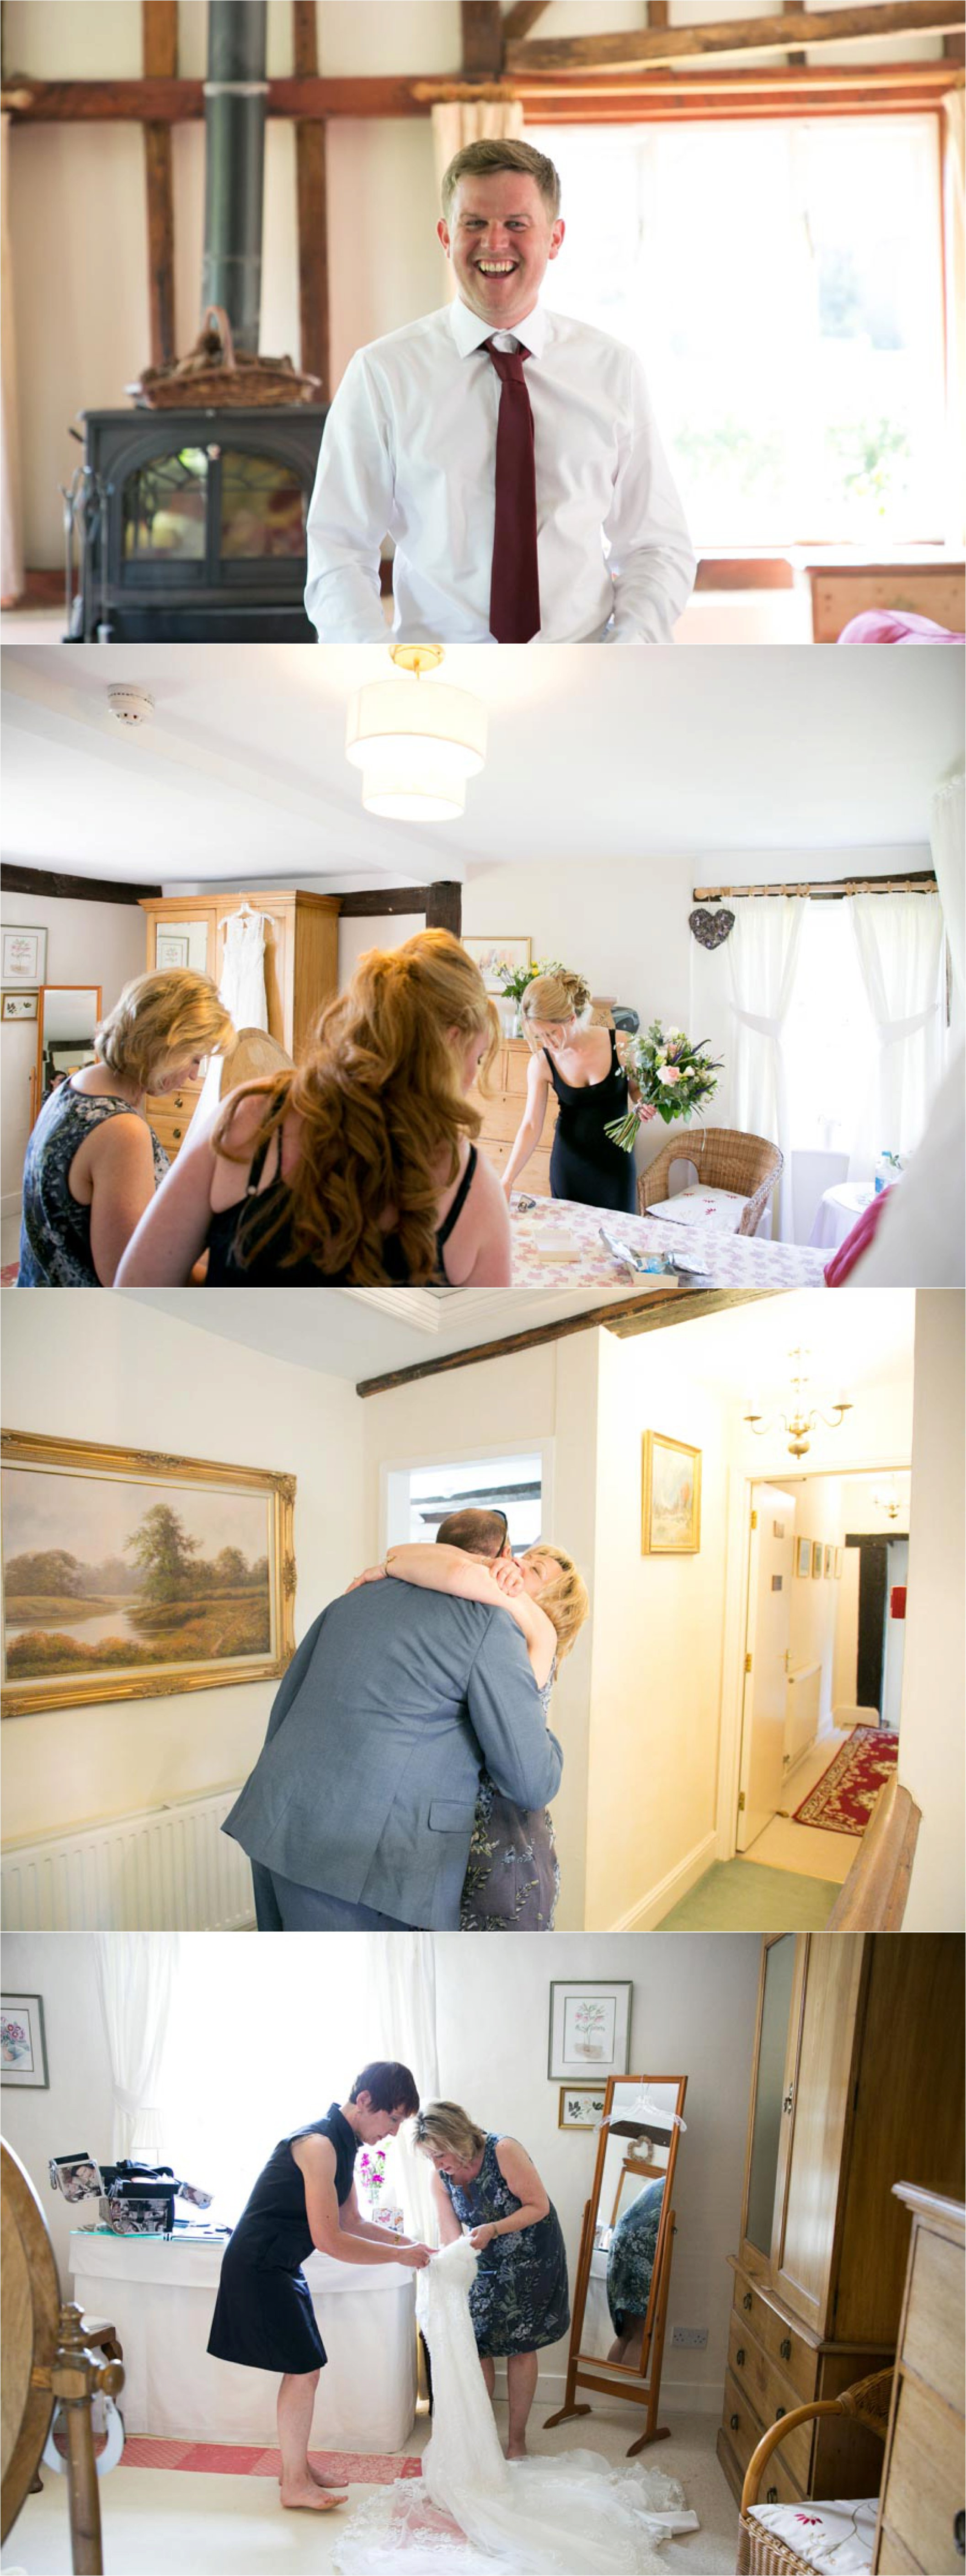 reid rooms spring wedding photography